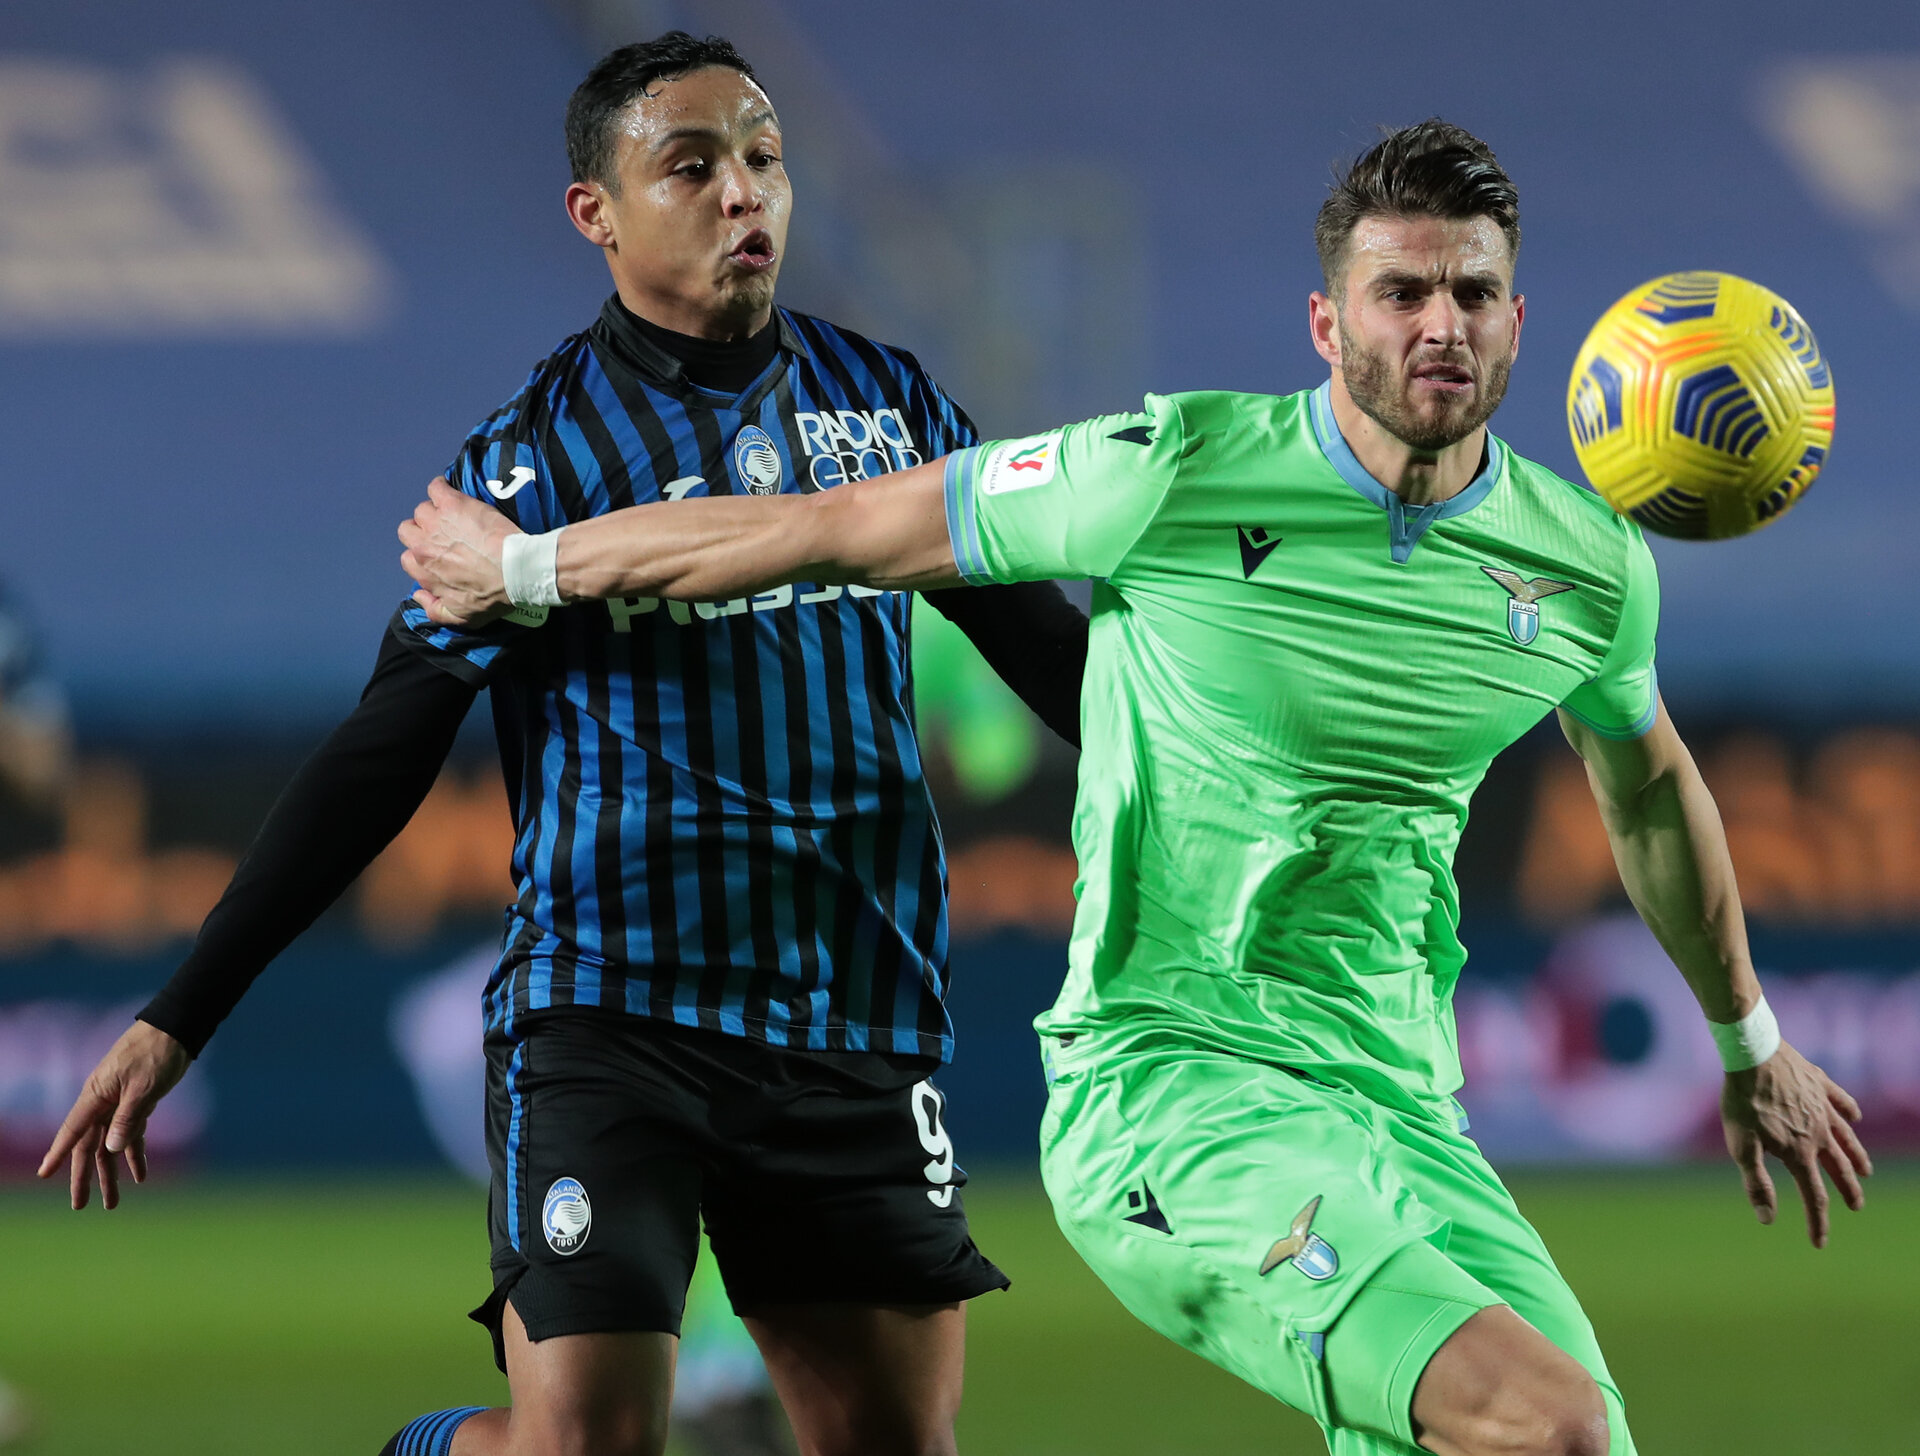 BERGAMO, ITALY - JANUARY 27:  Wesley Hoedt of SS Lazio competes for the ball with Luis Muriel of Atalanta BC during the Coppa Italia match between Atalanta BC and SS Lazio at Gewiss Stadium on January 27, 2021 in Bergamo, Italy. Sporting stadiums around Italy remain under strict restrictions due to the Coronavirus Pandemic as Government social distancing laws prohibit fans inside venues resulting in games being played behind closed doors. (Photo by Emilio Andreoli/Getty Images)